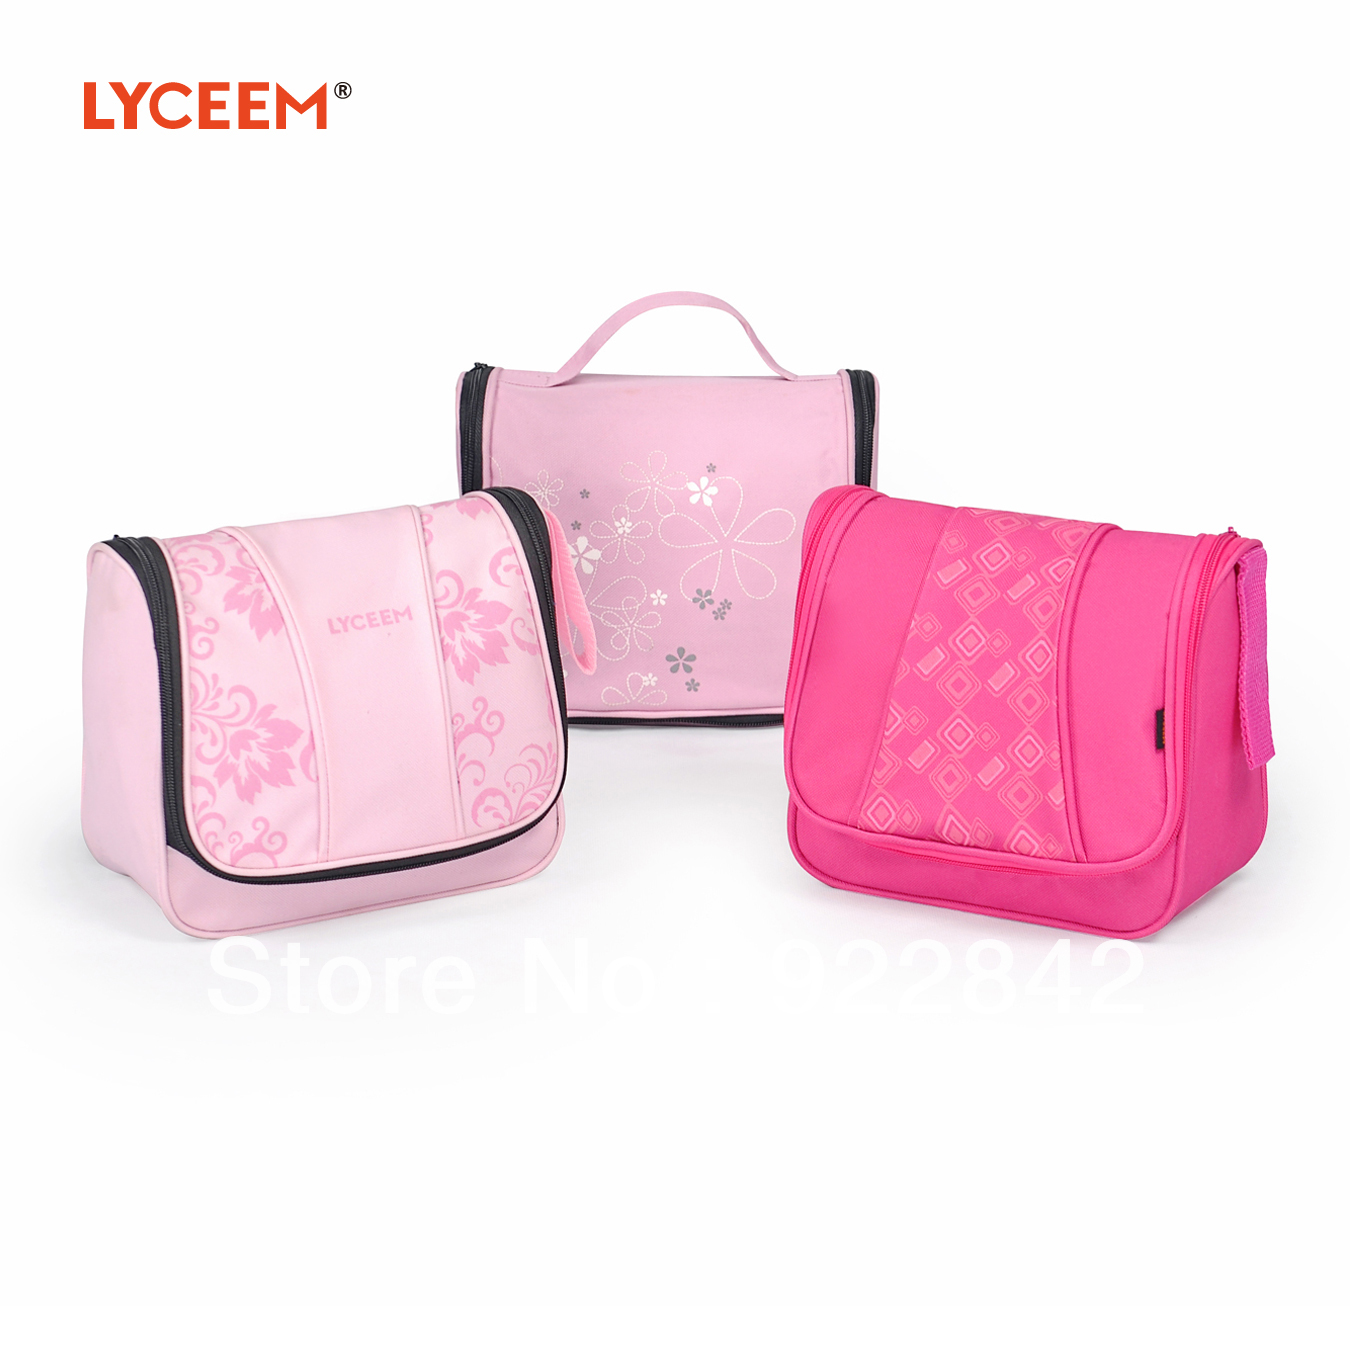 Cosmetic Bags & Cases Outdoor multifunctional male women's wash bag Travel cosmetic bag Large capacity storage bag